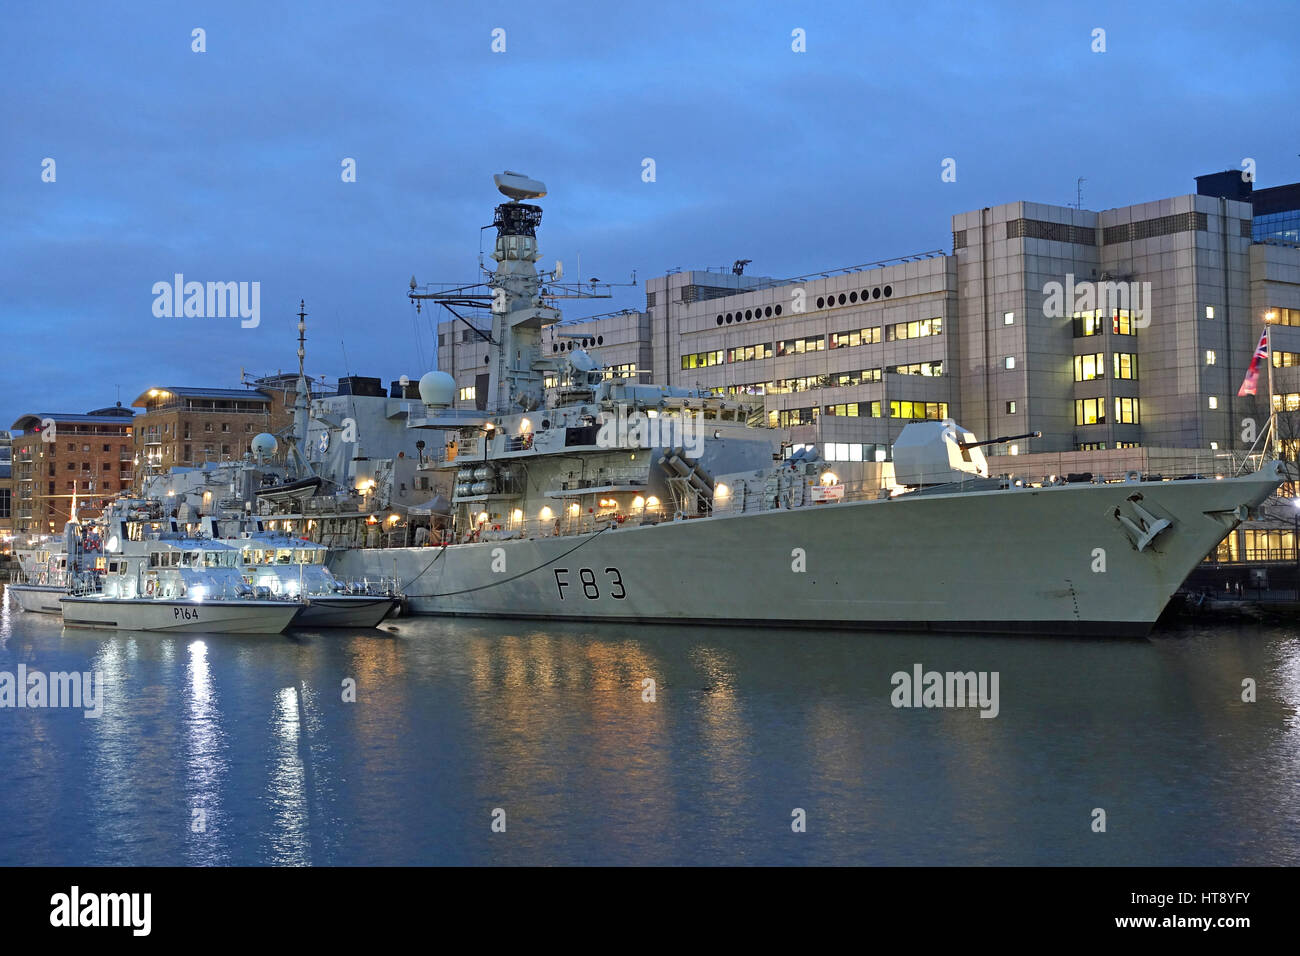 View of the Type 23 frigate HMS St Albans of the UK Royal Navy moored alongside at West India docks at night during - Stock Image